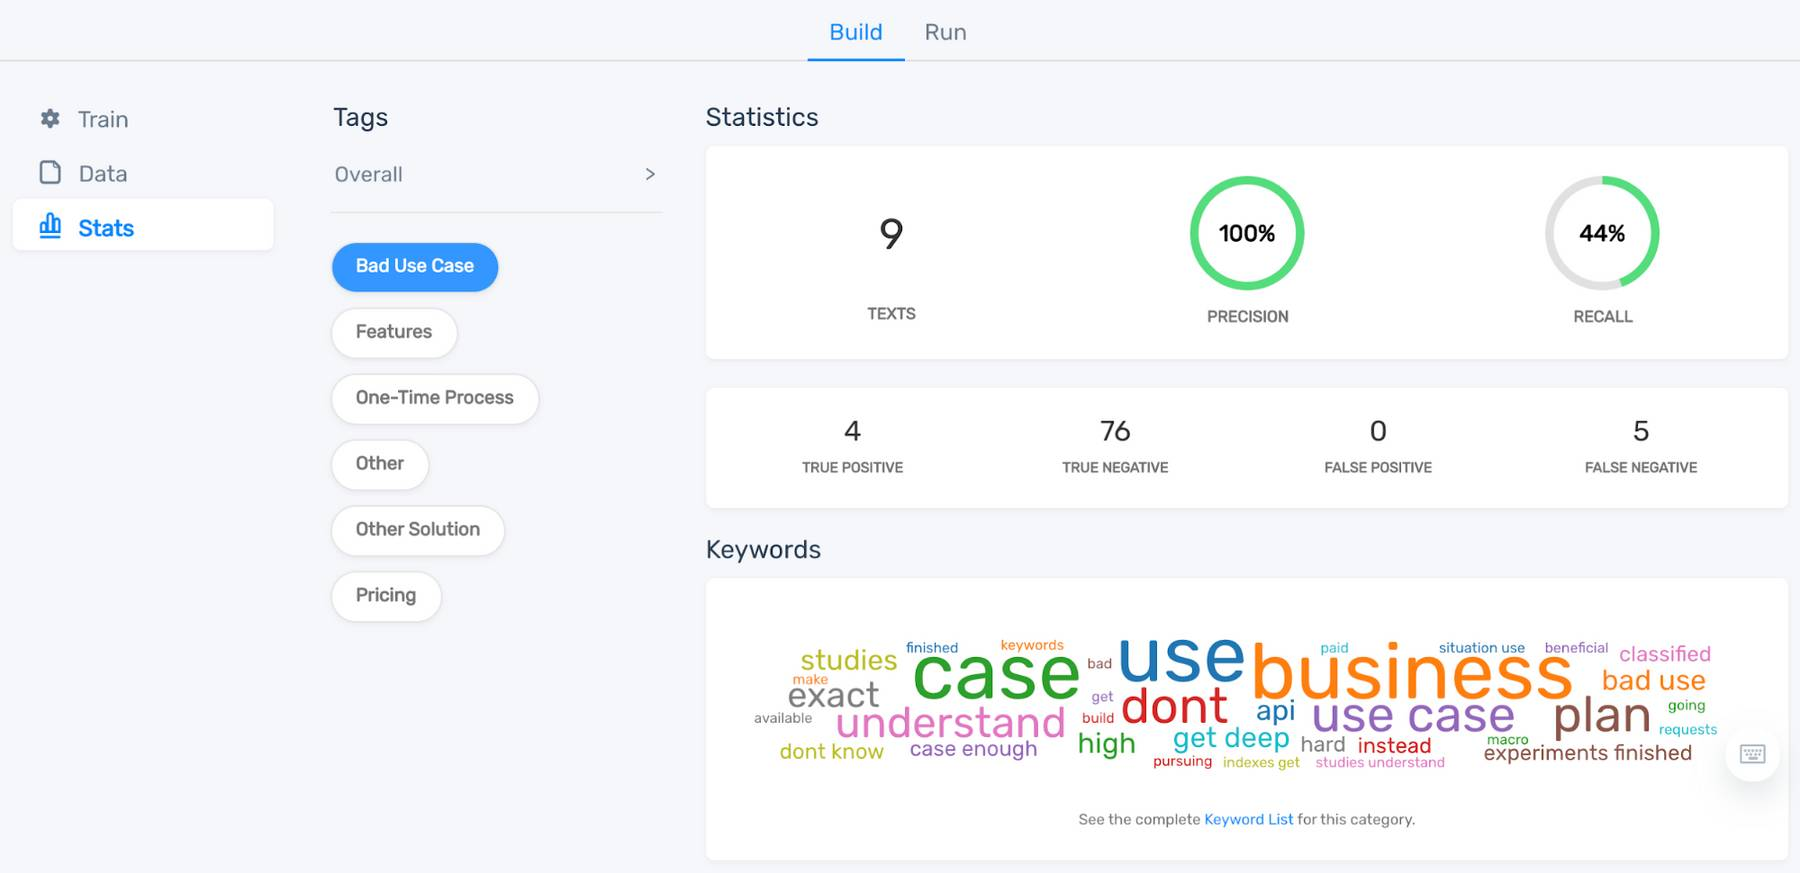 """Dashboard showing statistics and keyword cloud for """"Bad Use Case."""""""